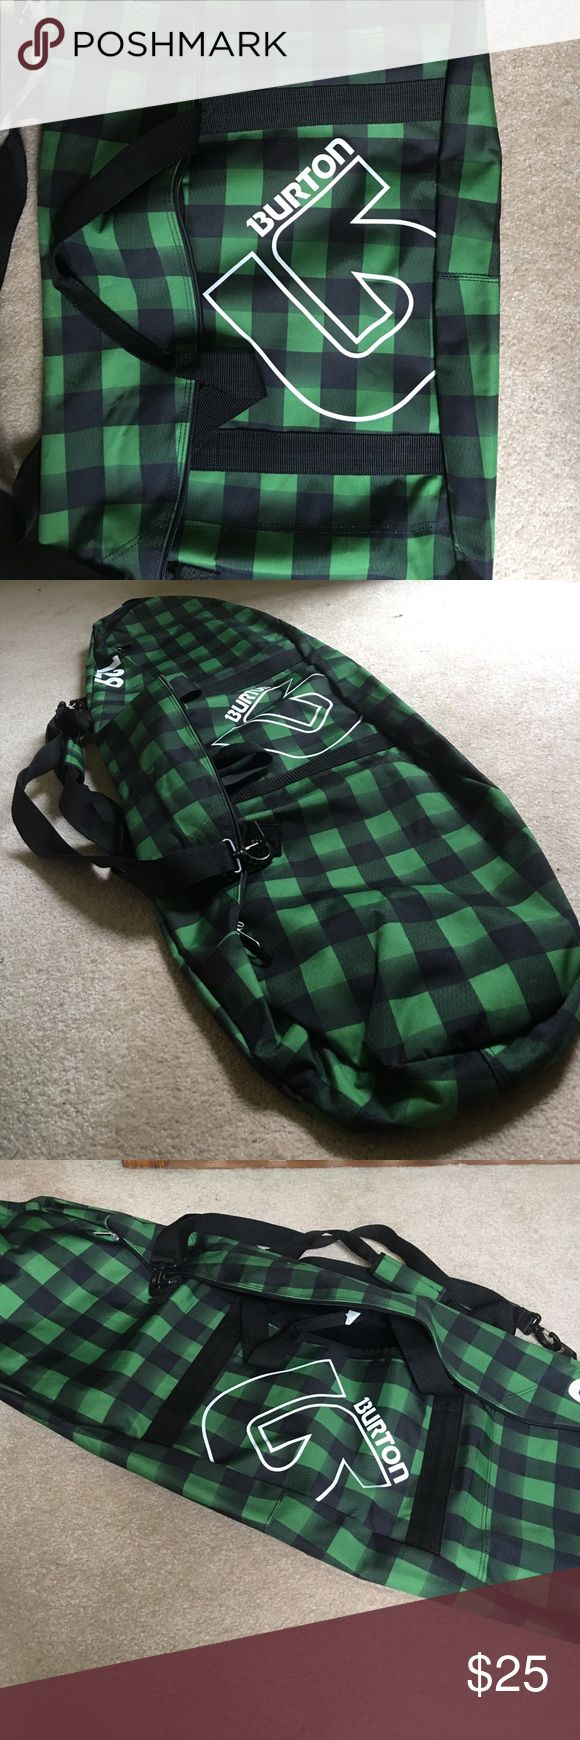 Burton Snowboard Bag 129 Never been used, like new Burton Snowboarding bag! Fits size 129 board or smaller! Burton Bags Luggage & Travel Bags